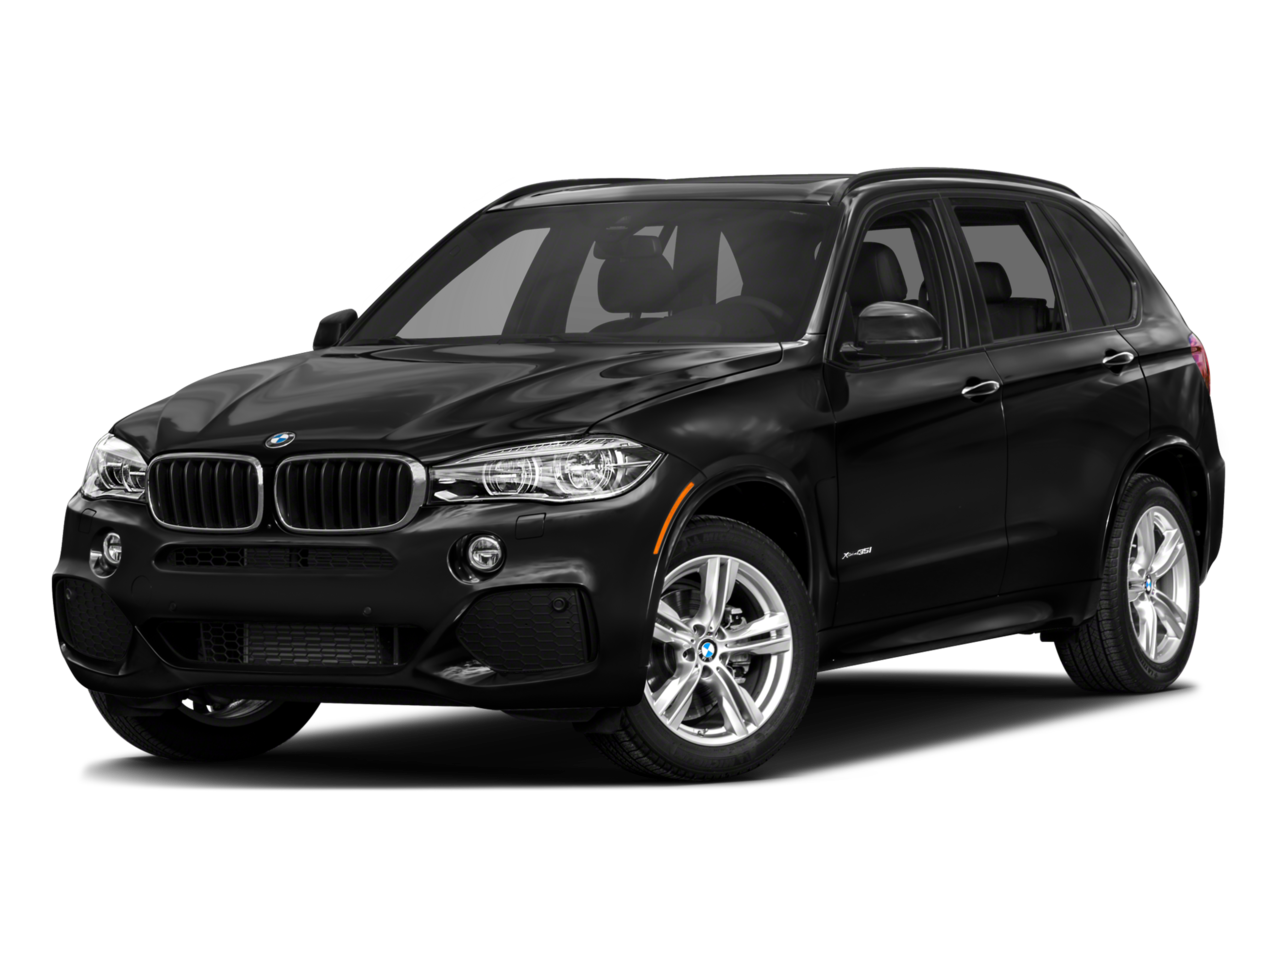 2017 BMW X5 - Chicago, IL